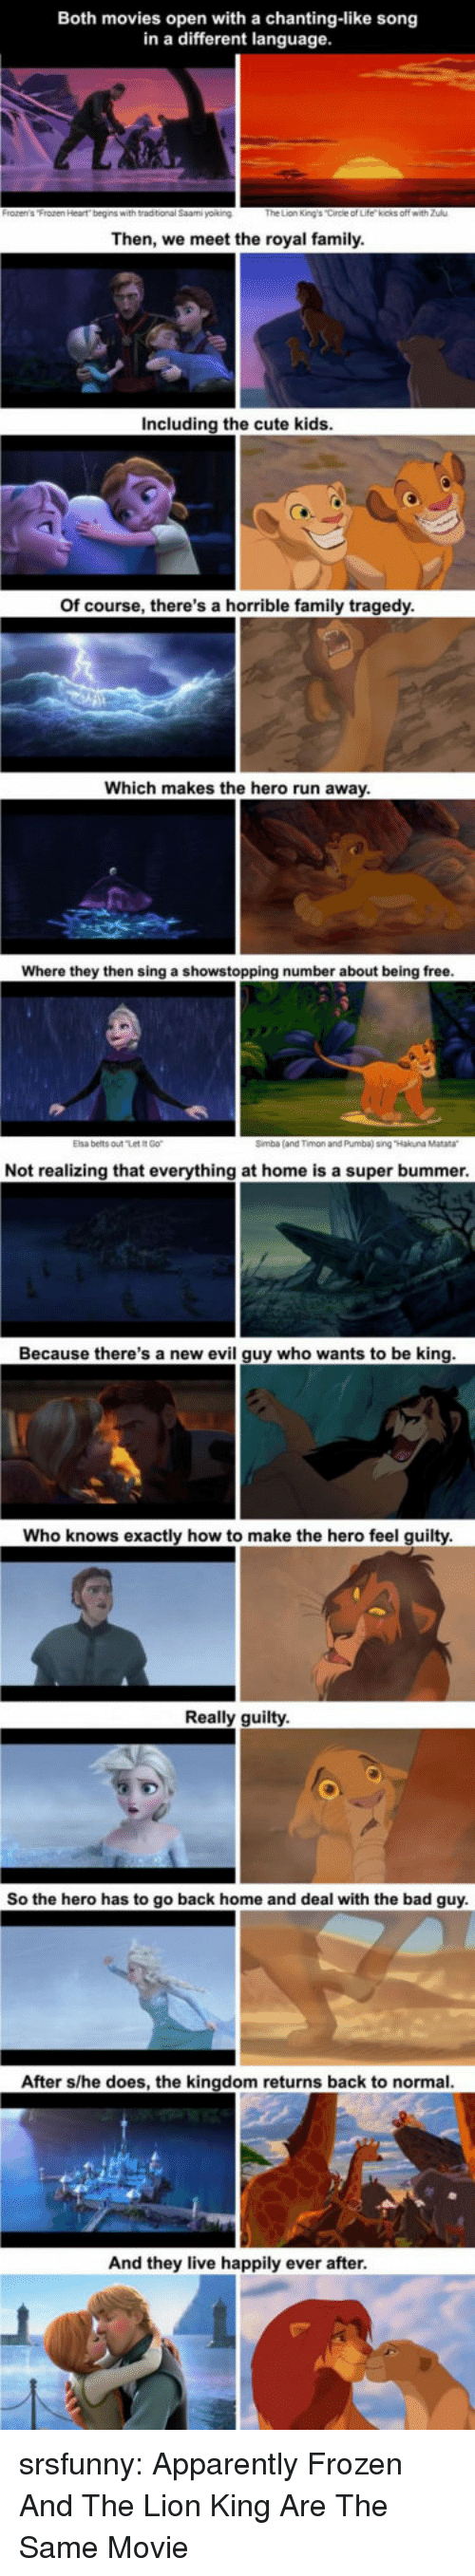 Elsa: Both movies open with a chanting-like song  in a different language  Then, we meet the royal family  Including the cute kids  Of course, there's a horrible family tragedy  Which makes the hero run away  Where they then sing a showstopping number about being free  Elsa belts outt  Simba (and Timon and Pumba) sing Hakuna Matara  Not realizing that everything at home is a super bummer  Because there's a new evil guy who wants to be king  Who knows exactly how to make the hero feel guilty  Really guilty  So the hero has to go back home and deal with the bad guy  After s/he does, the kingdom returns back to normal  And they live happily ever after srsfunny:  Apparently Frozen And The Lion King Are The Same Movie